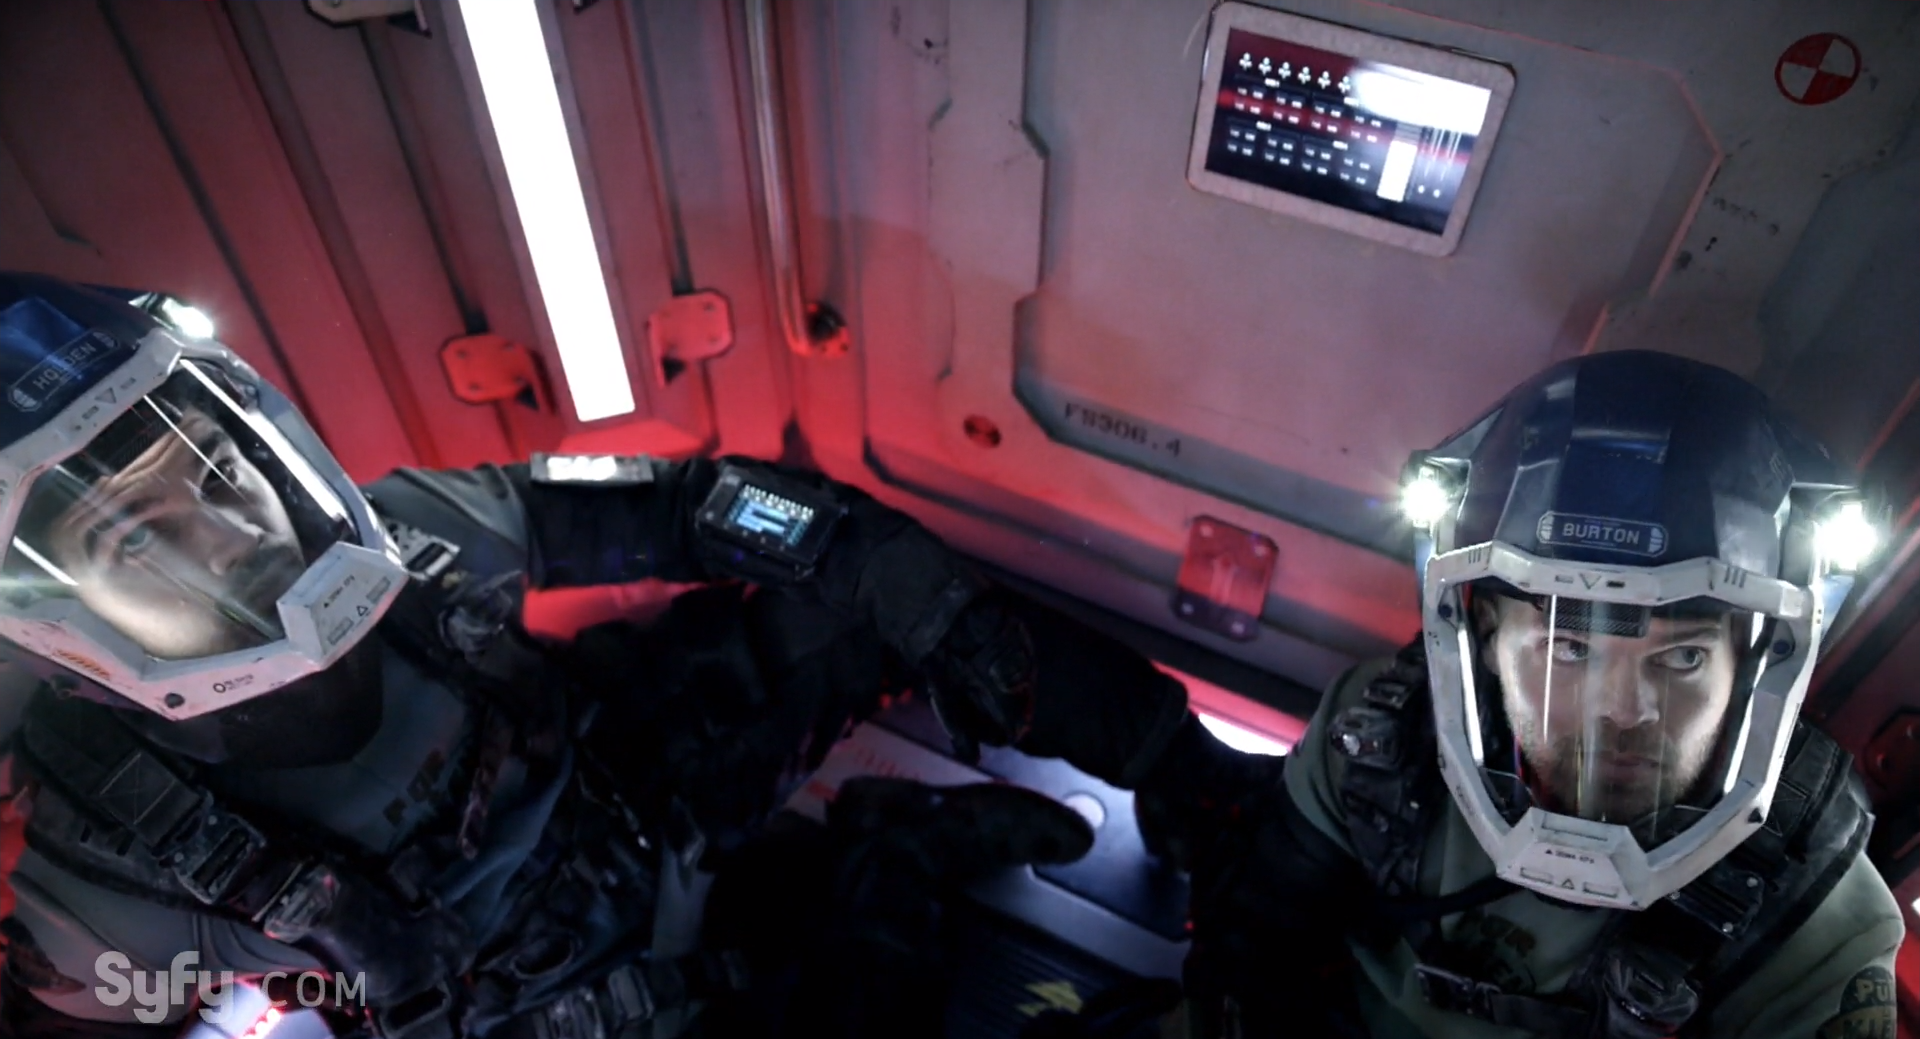 Sneak Peak of The Expanse Available Now!